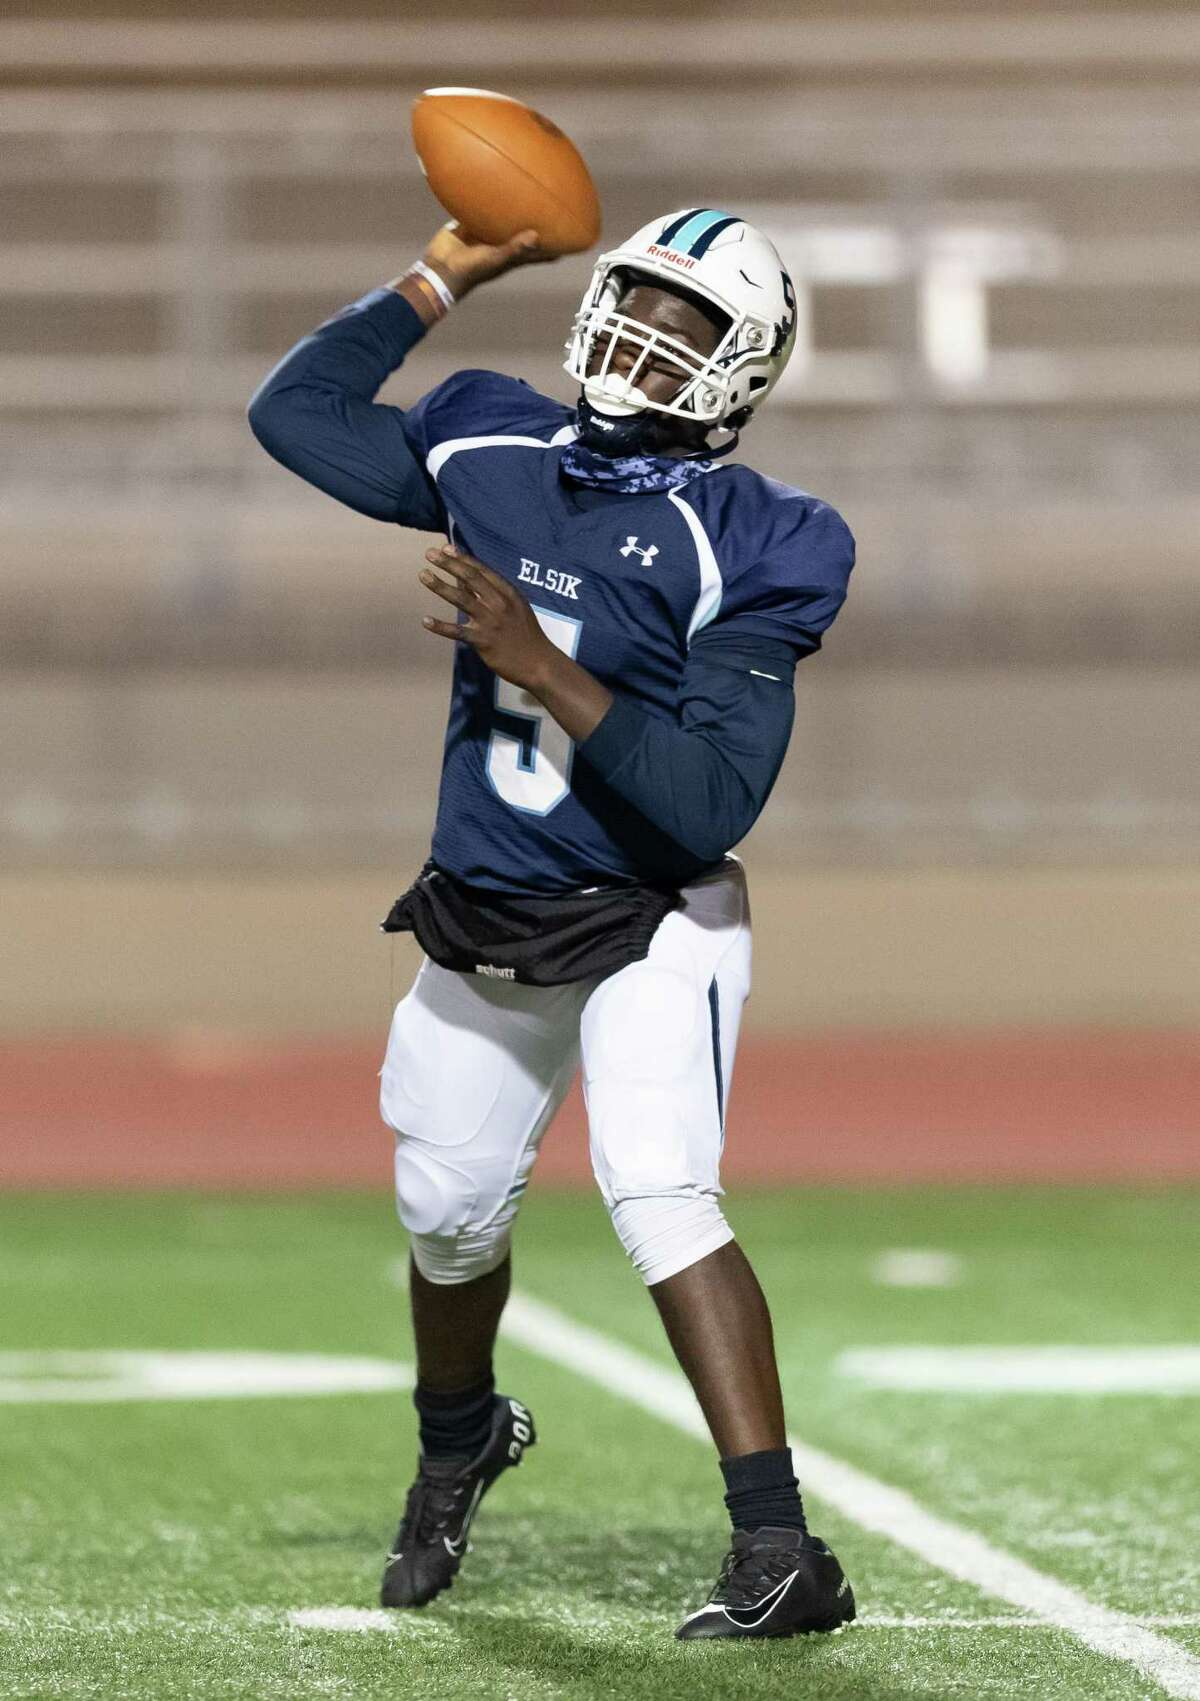 Eric Dadzie (5) of the Alief Elsik Rams attempts a pass in the first half against the Alief Taylor Lions during a High School football game on Friday, October 16, 2020 at Crump Stadium in Houston Texas.